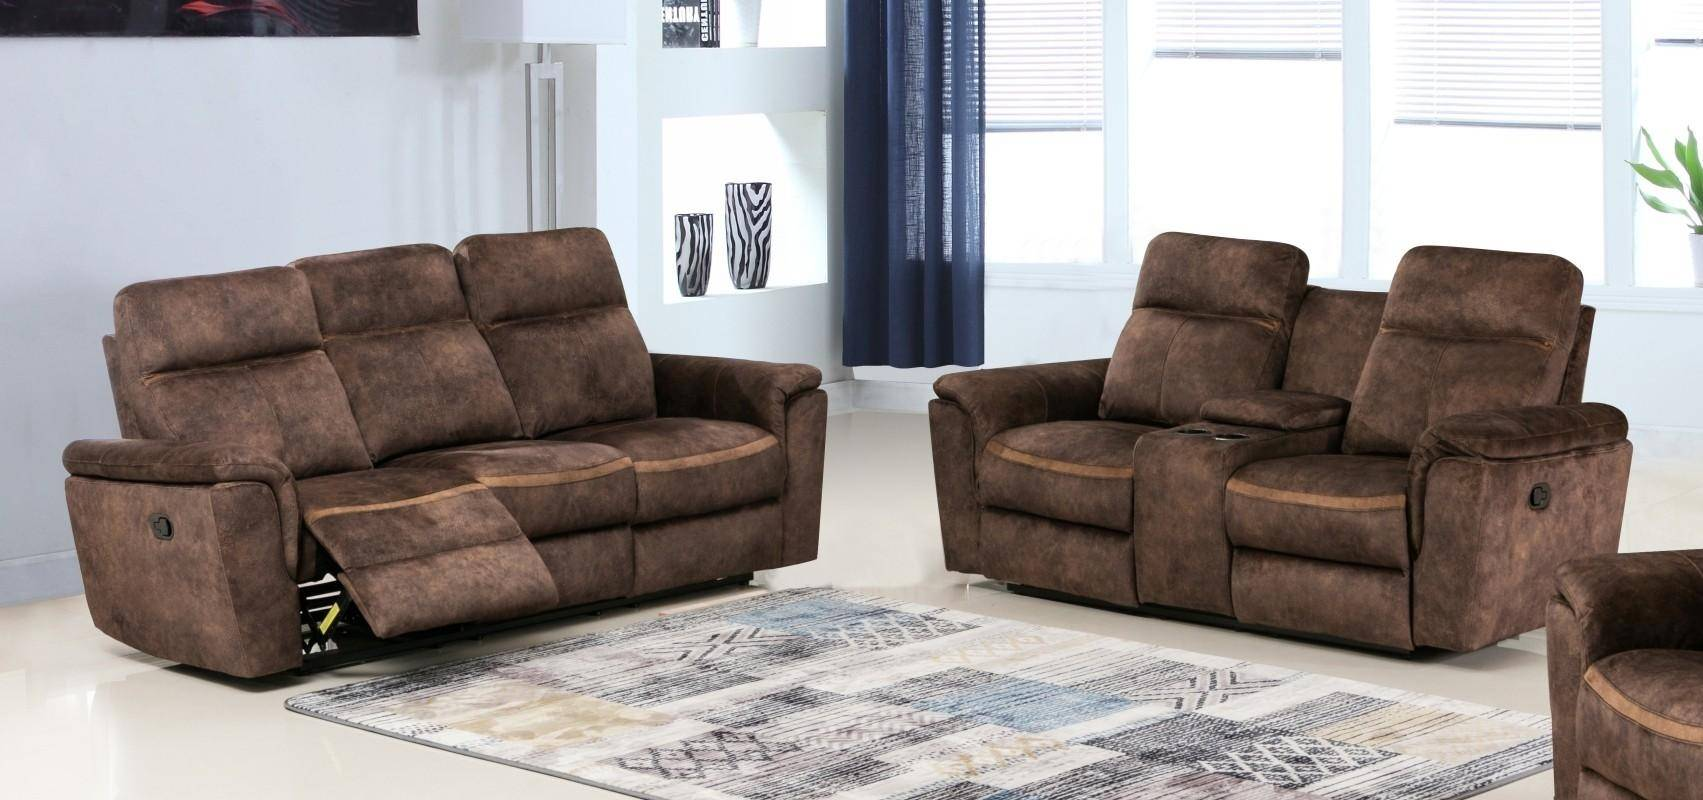 Contemporary Dark Brown Palomino Recliner Sofa Set 2 Pcs Soflex Parker